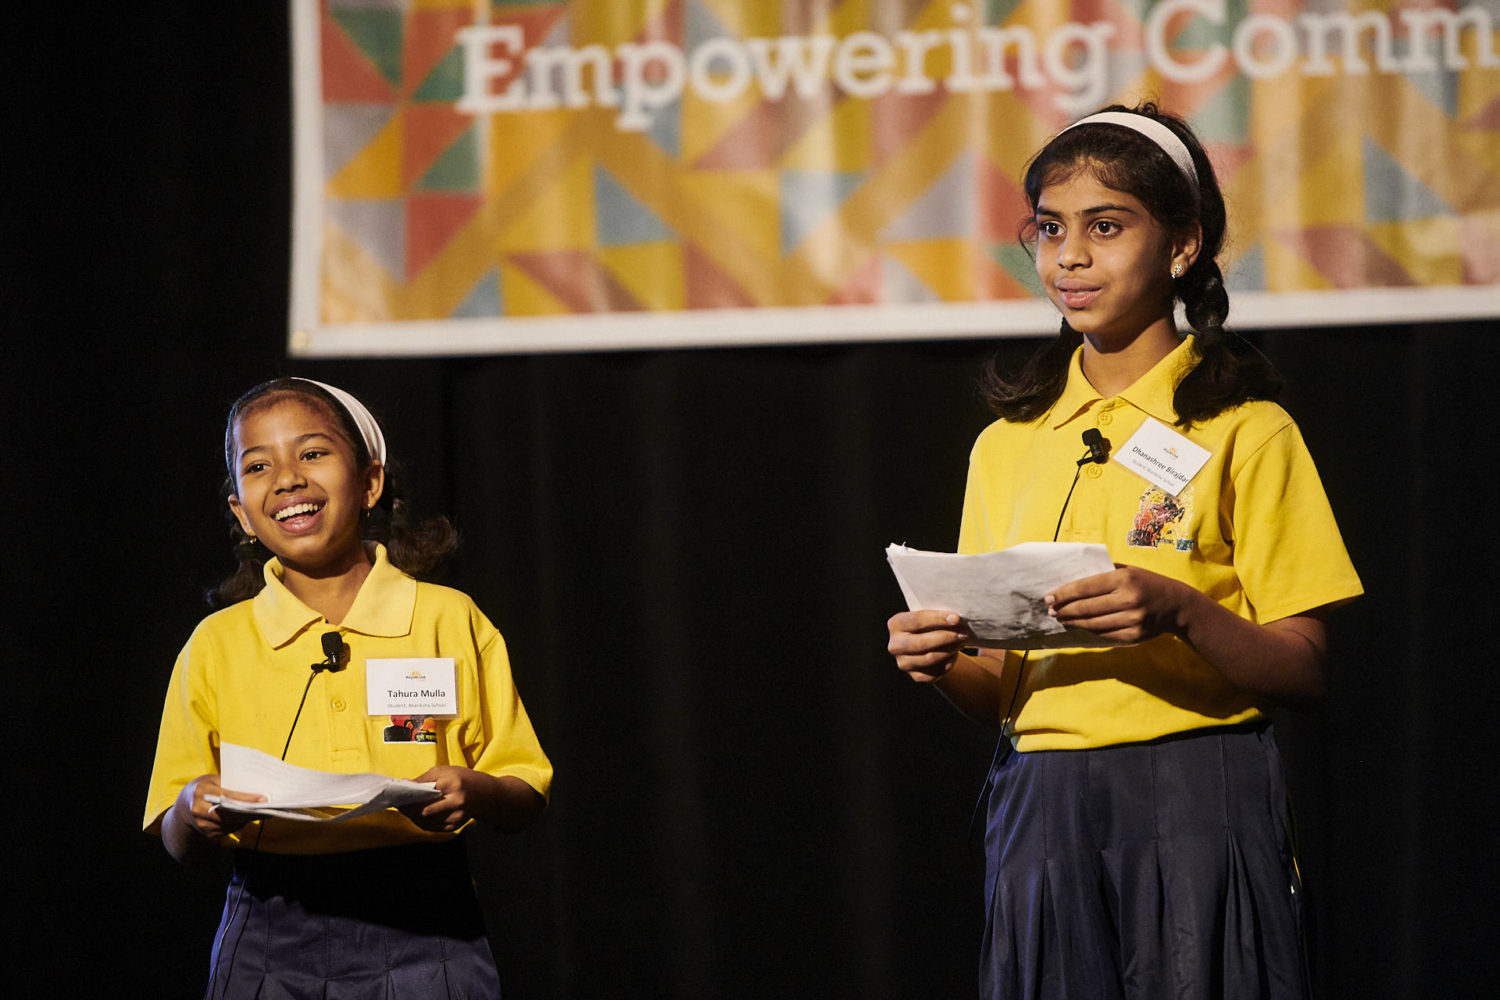 Tahura and Dhanashree, 6th Grade Akanksha Students, Keynote Speakers